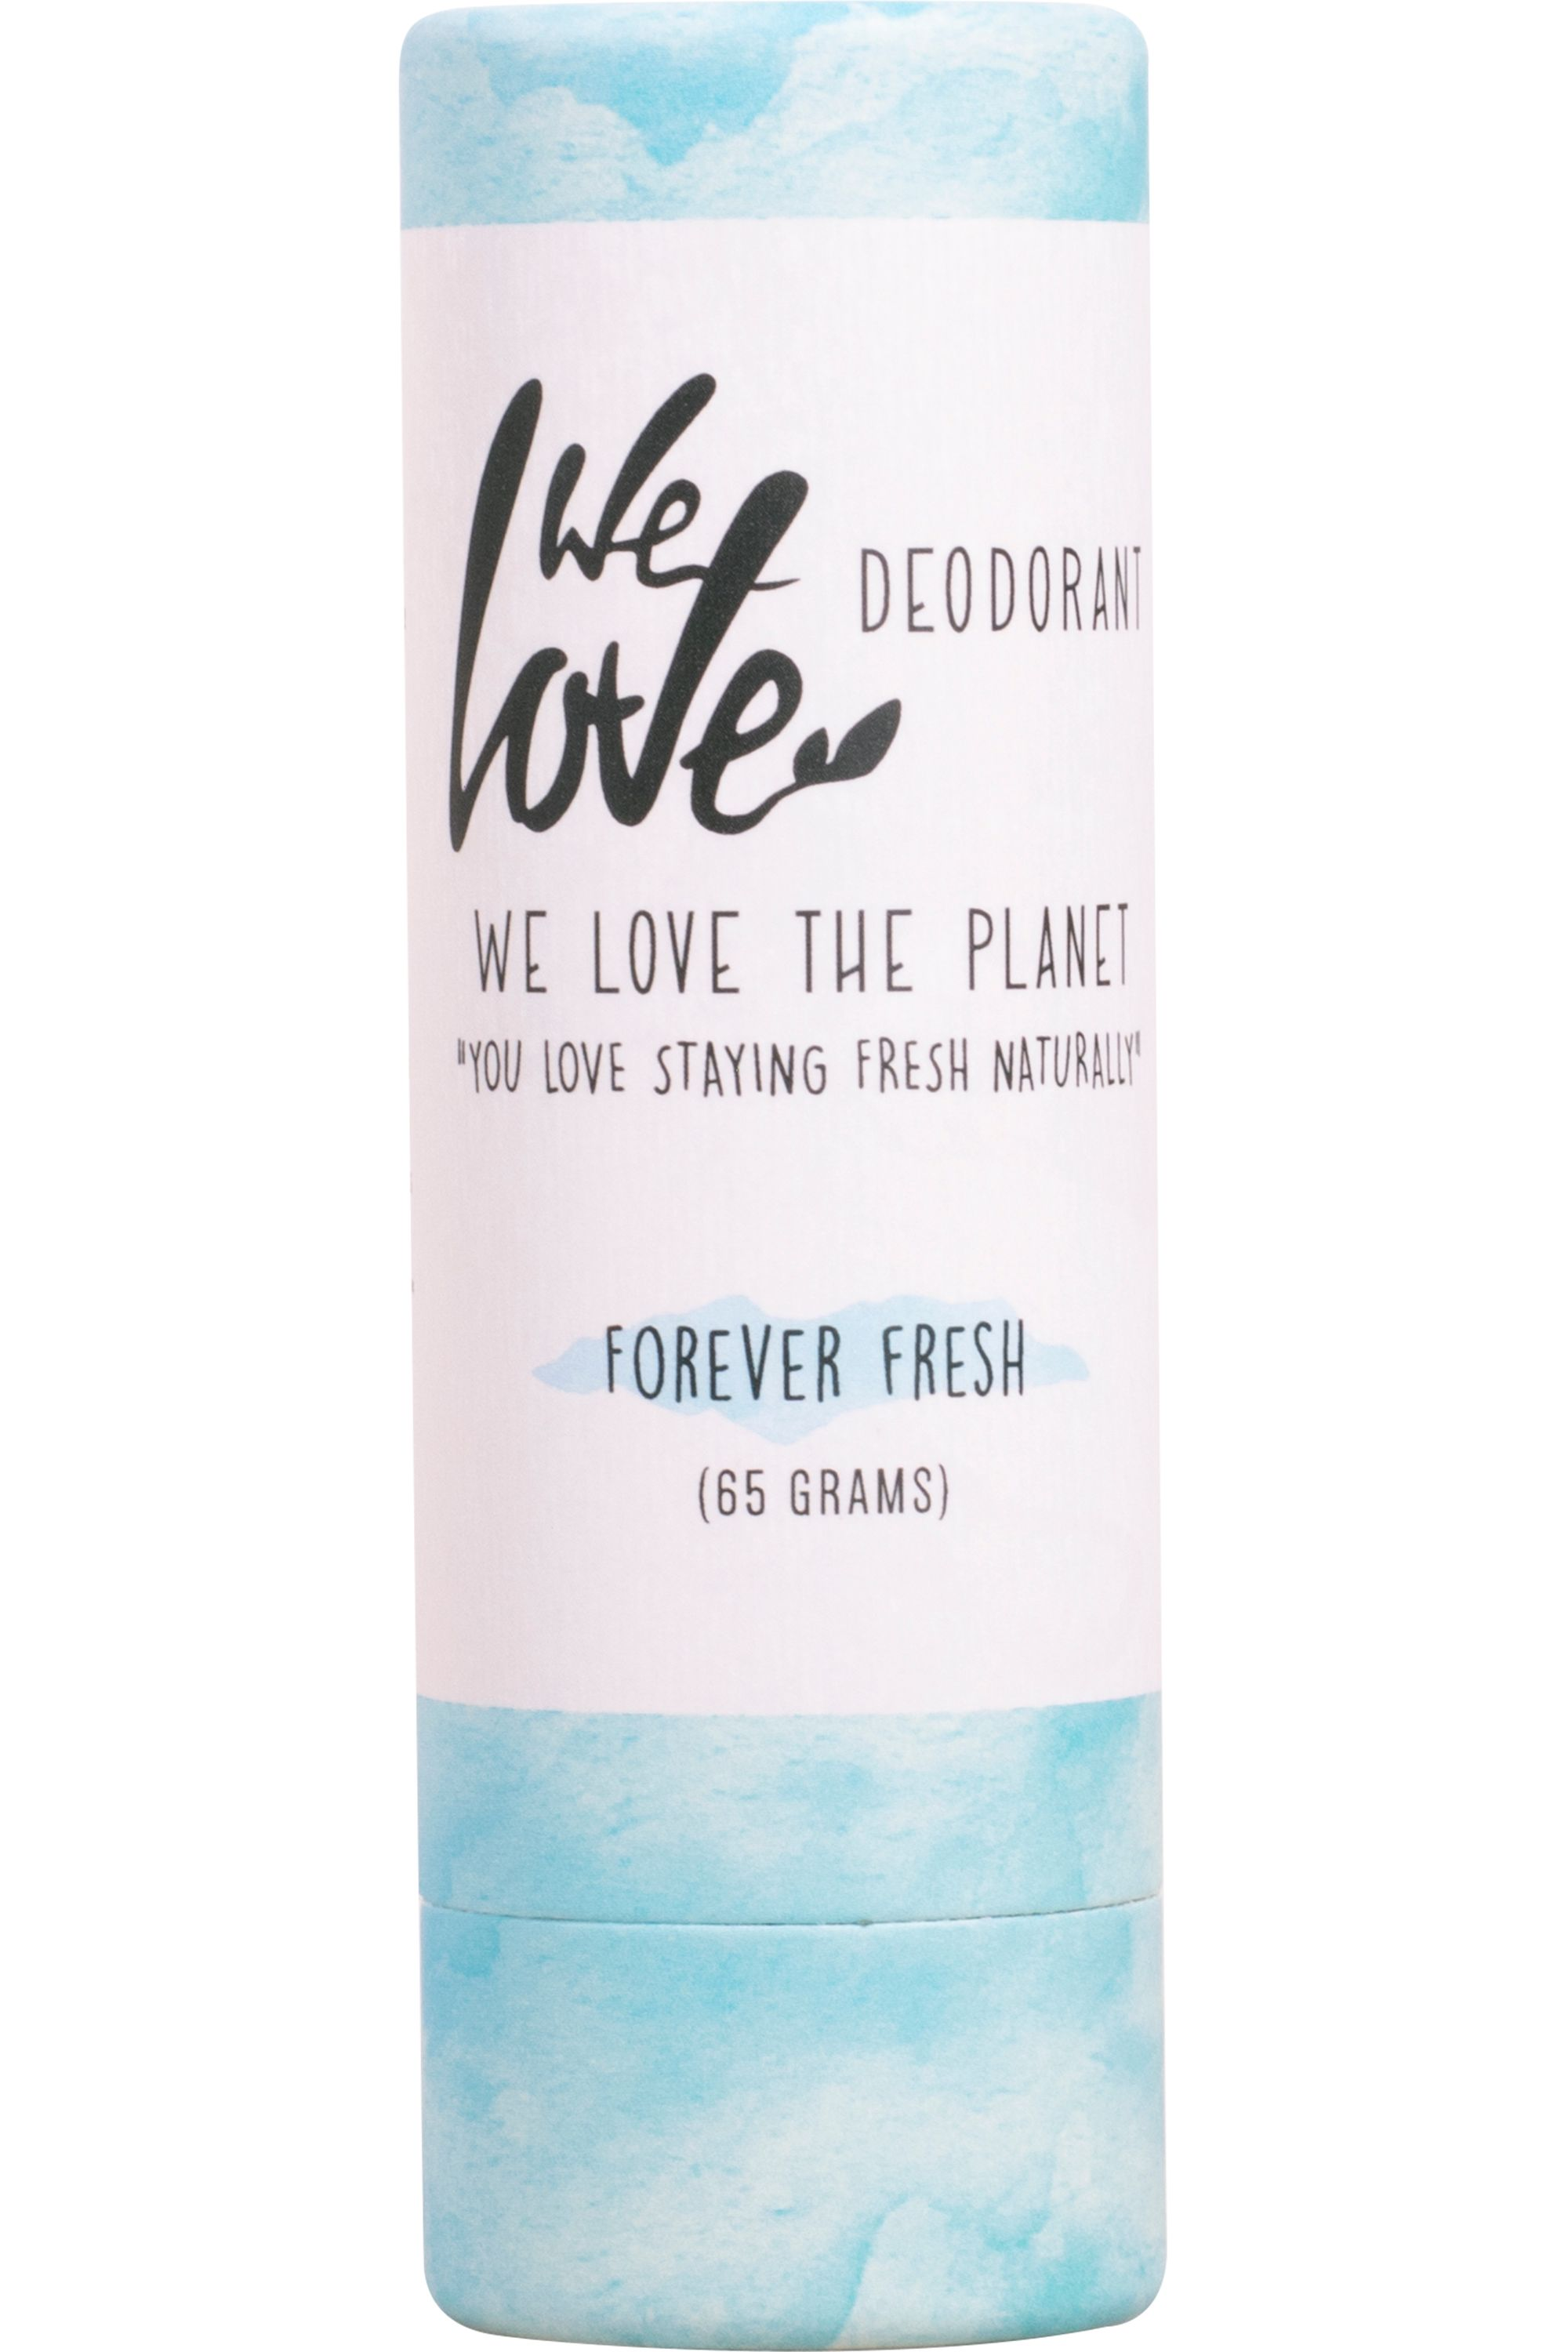 Blissim : WE LOVE THE PLANET - Déodorant stick naturel Forever Fresh - Déodorant stick naturel Forever Fresh